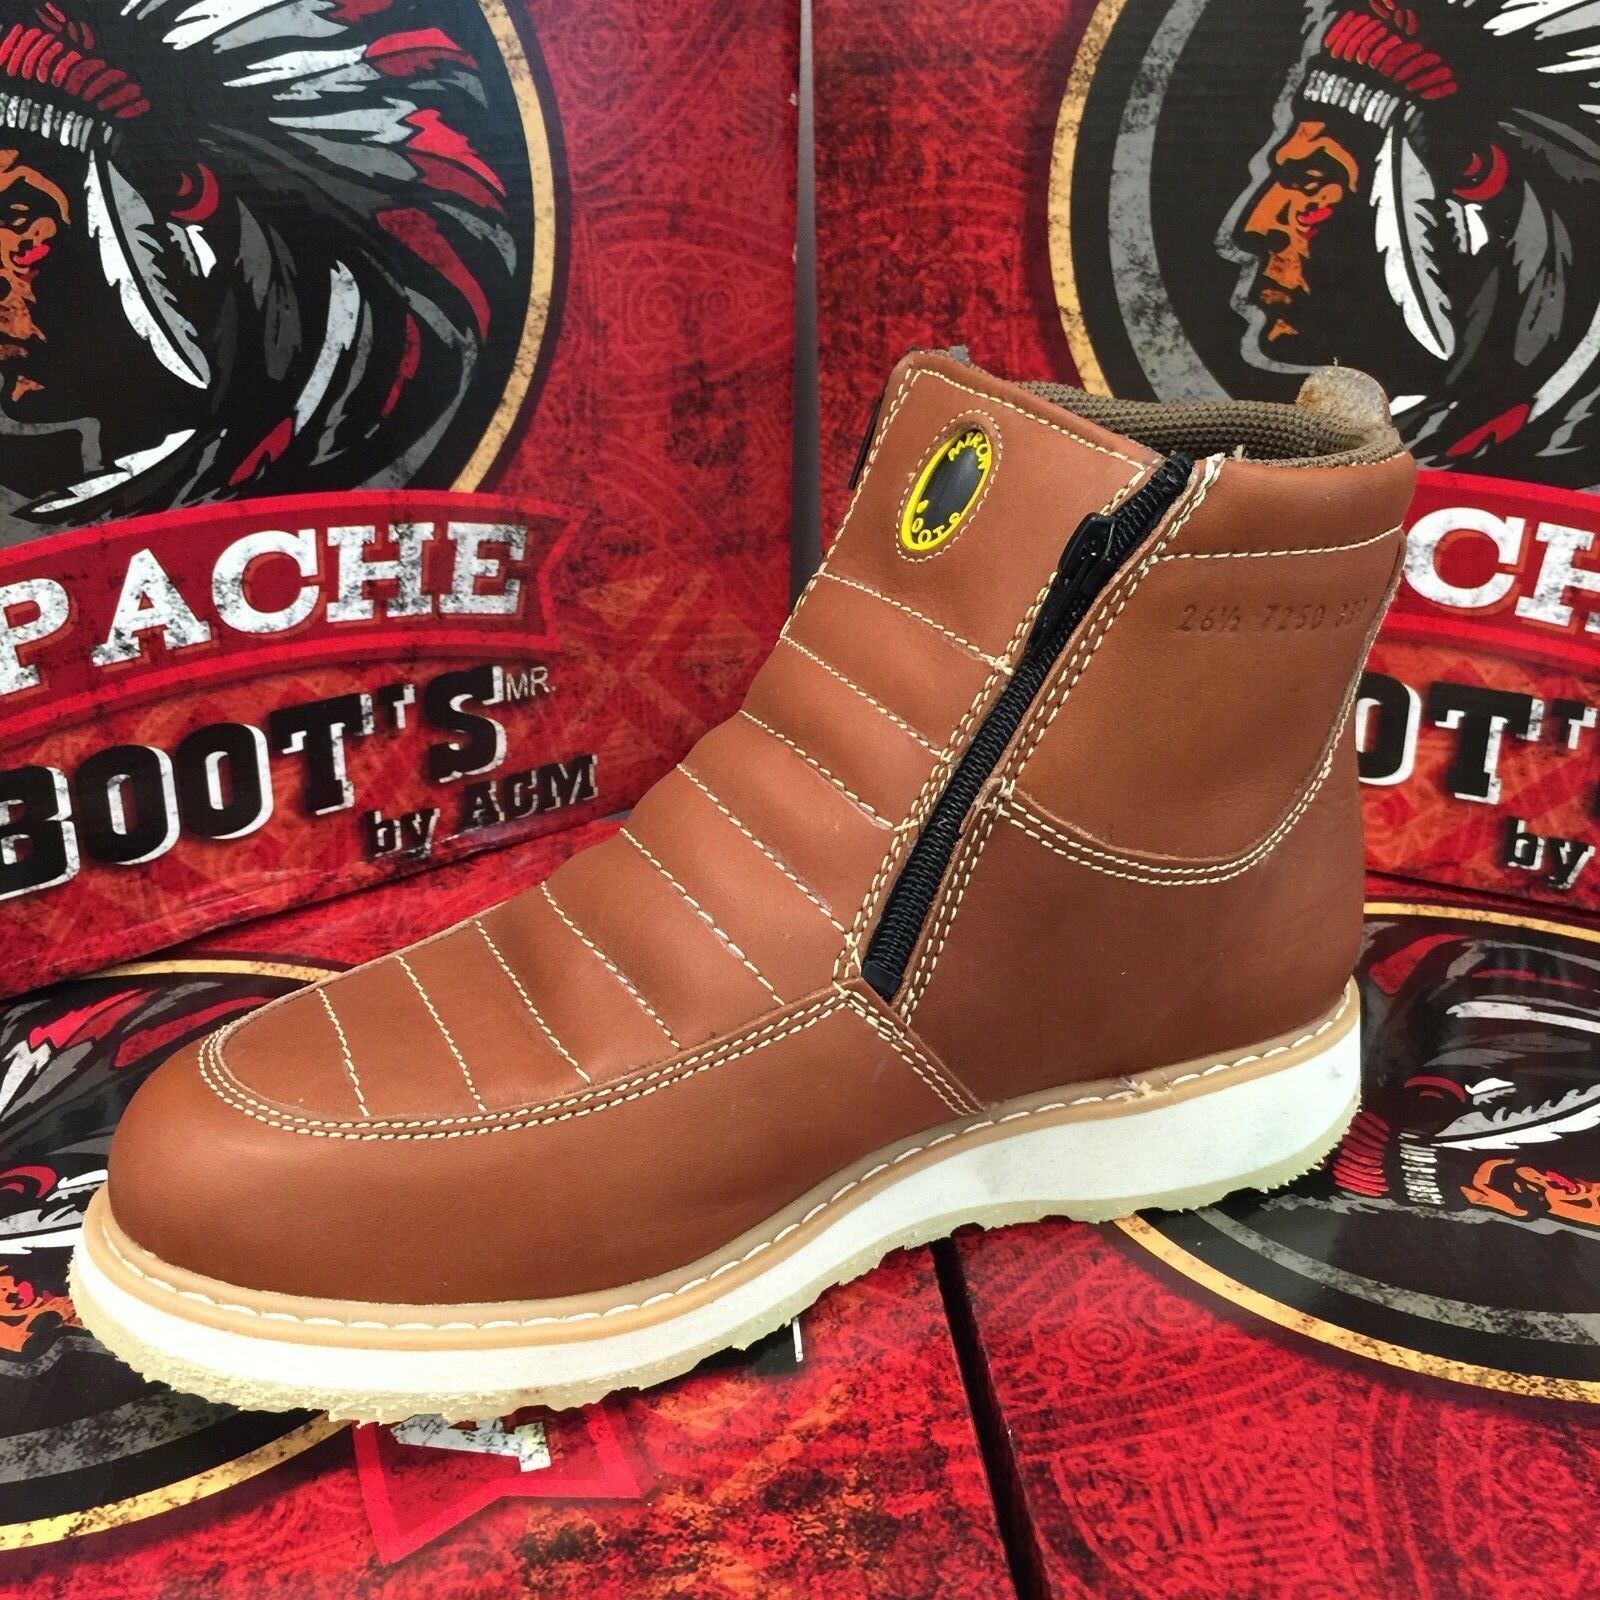 MEN'S WORK BOOTS GENUINE LEATHER ZIP UP SAFETY SOFT TOE OIL RESISTANT HONEY